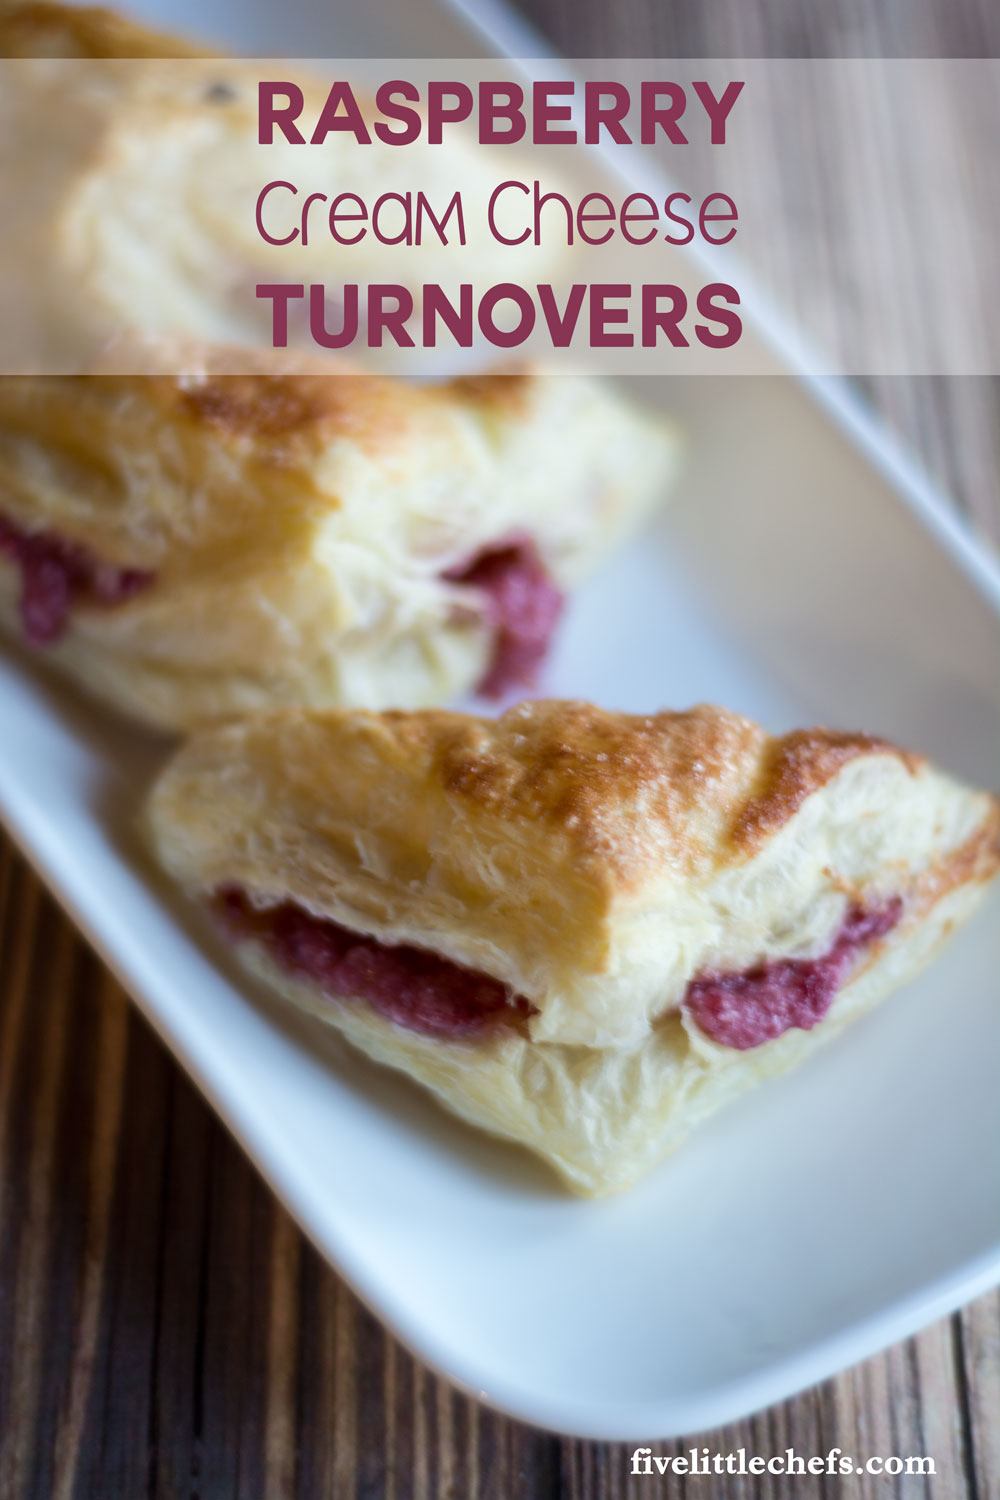 Raspberry Cream Cheese Turnovers are SO easy to make. Just a few ingredients and about 40 minutes. This danish recipe is sure to impress your guests.